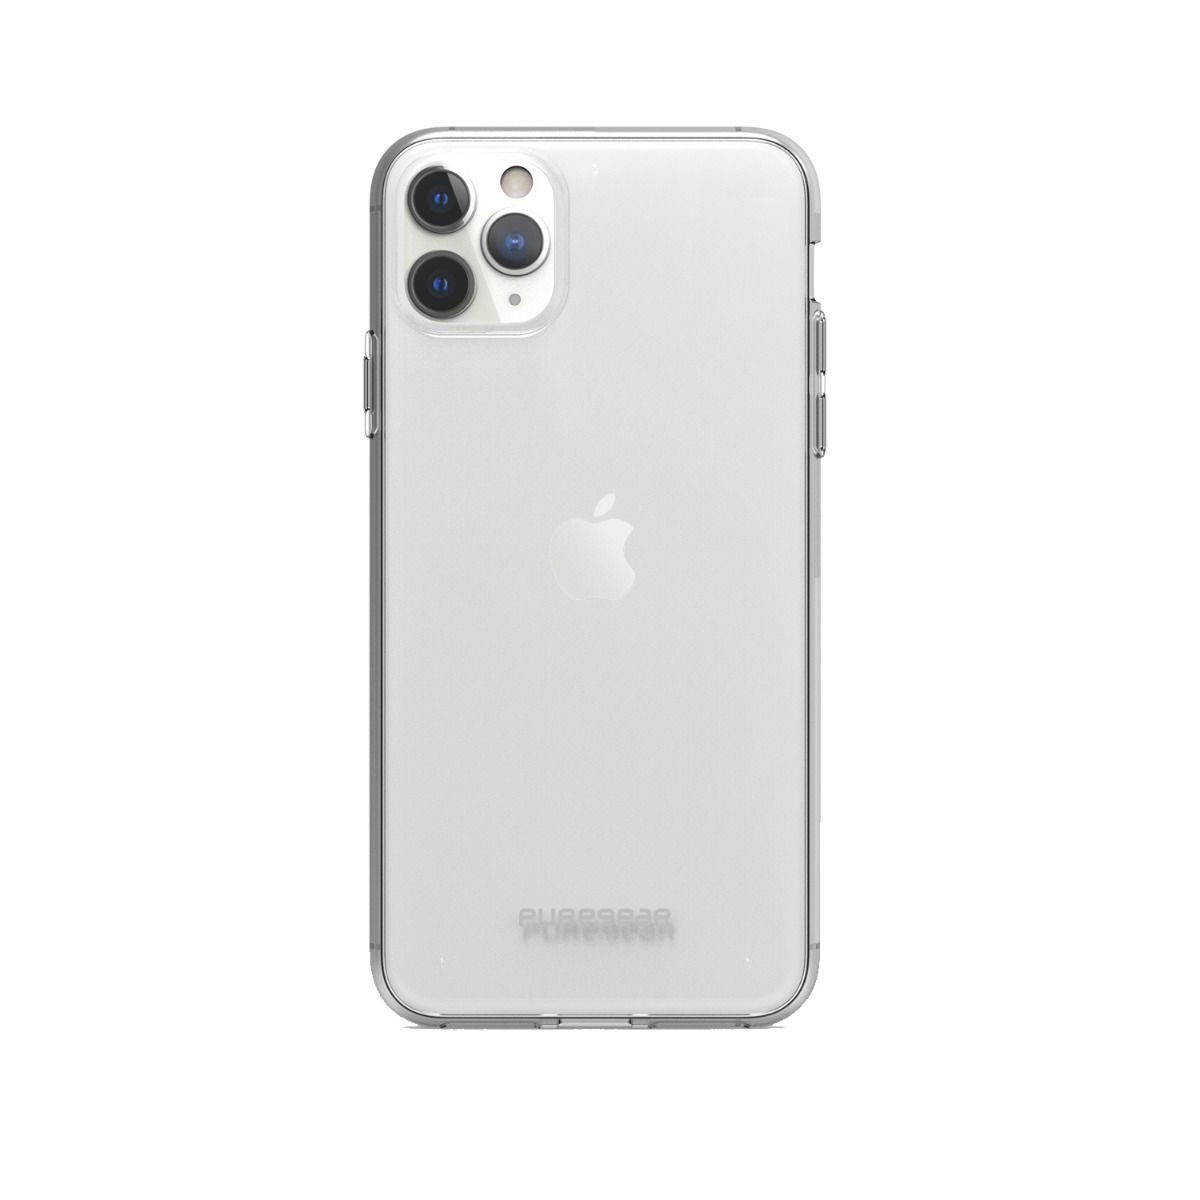 Apple iPhone 11 Pro Max Slim Shell Case - Clear/Clear